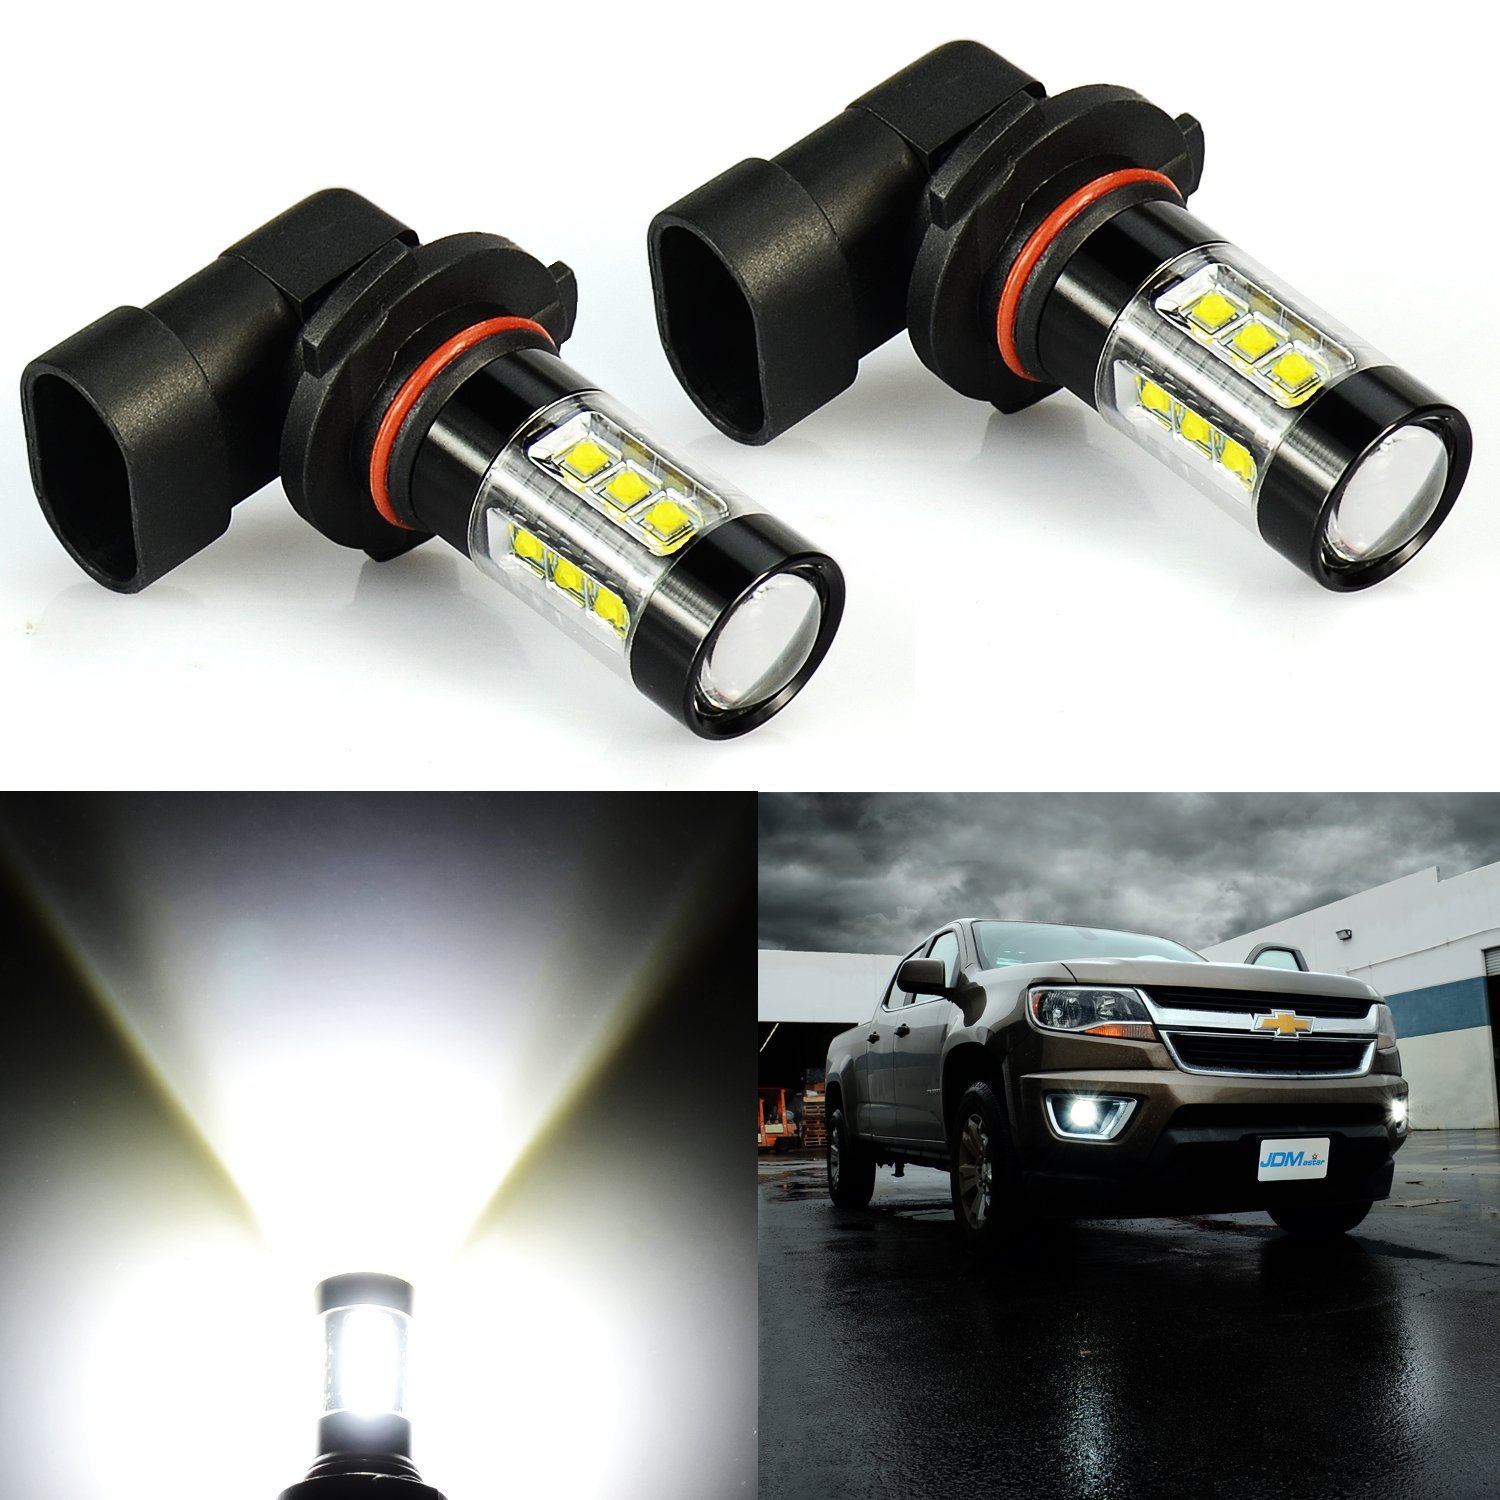 JDM ASTAR Extremely Bright 3200 Lumens Max 80W High Power H10 9145 9140 9050 9155 LED Fog Light Bulbs for DRL or Fog Lights, Xenon White